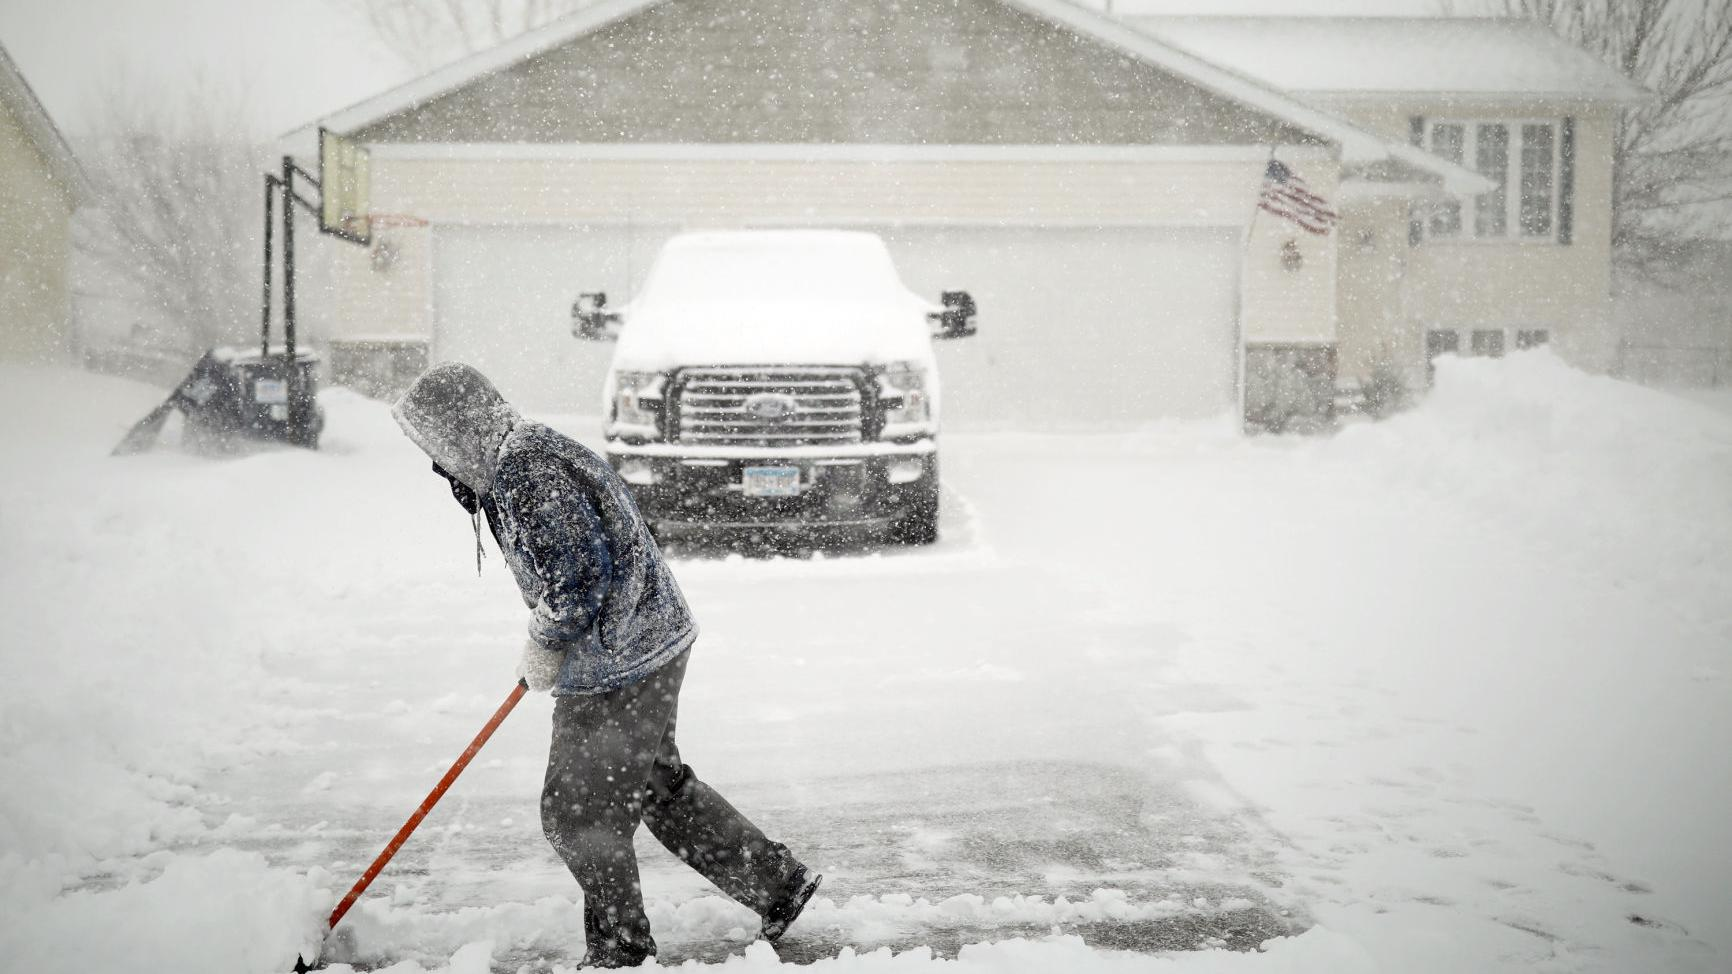 Storm brings freezing rain, heavy snow, strong winds across Midwest